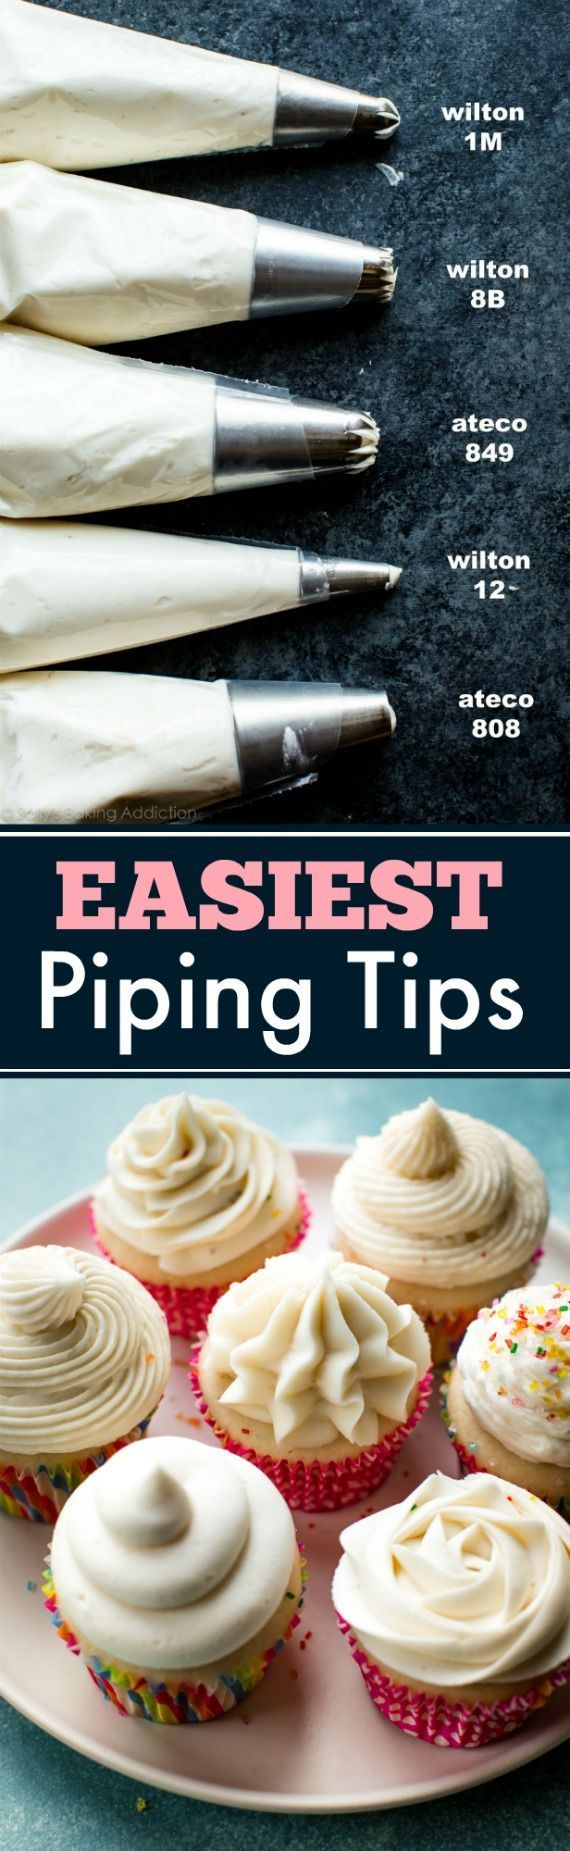 Here are the EASY ways to pipe beautiful frosting designs and decorations. Plus the best piping tips and vanilla buttercream recipe! sallysbakingaddiction.com